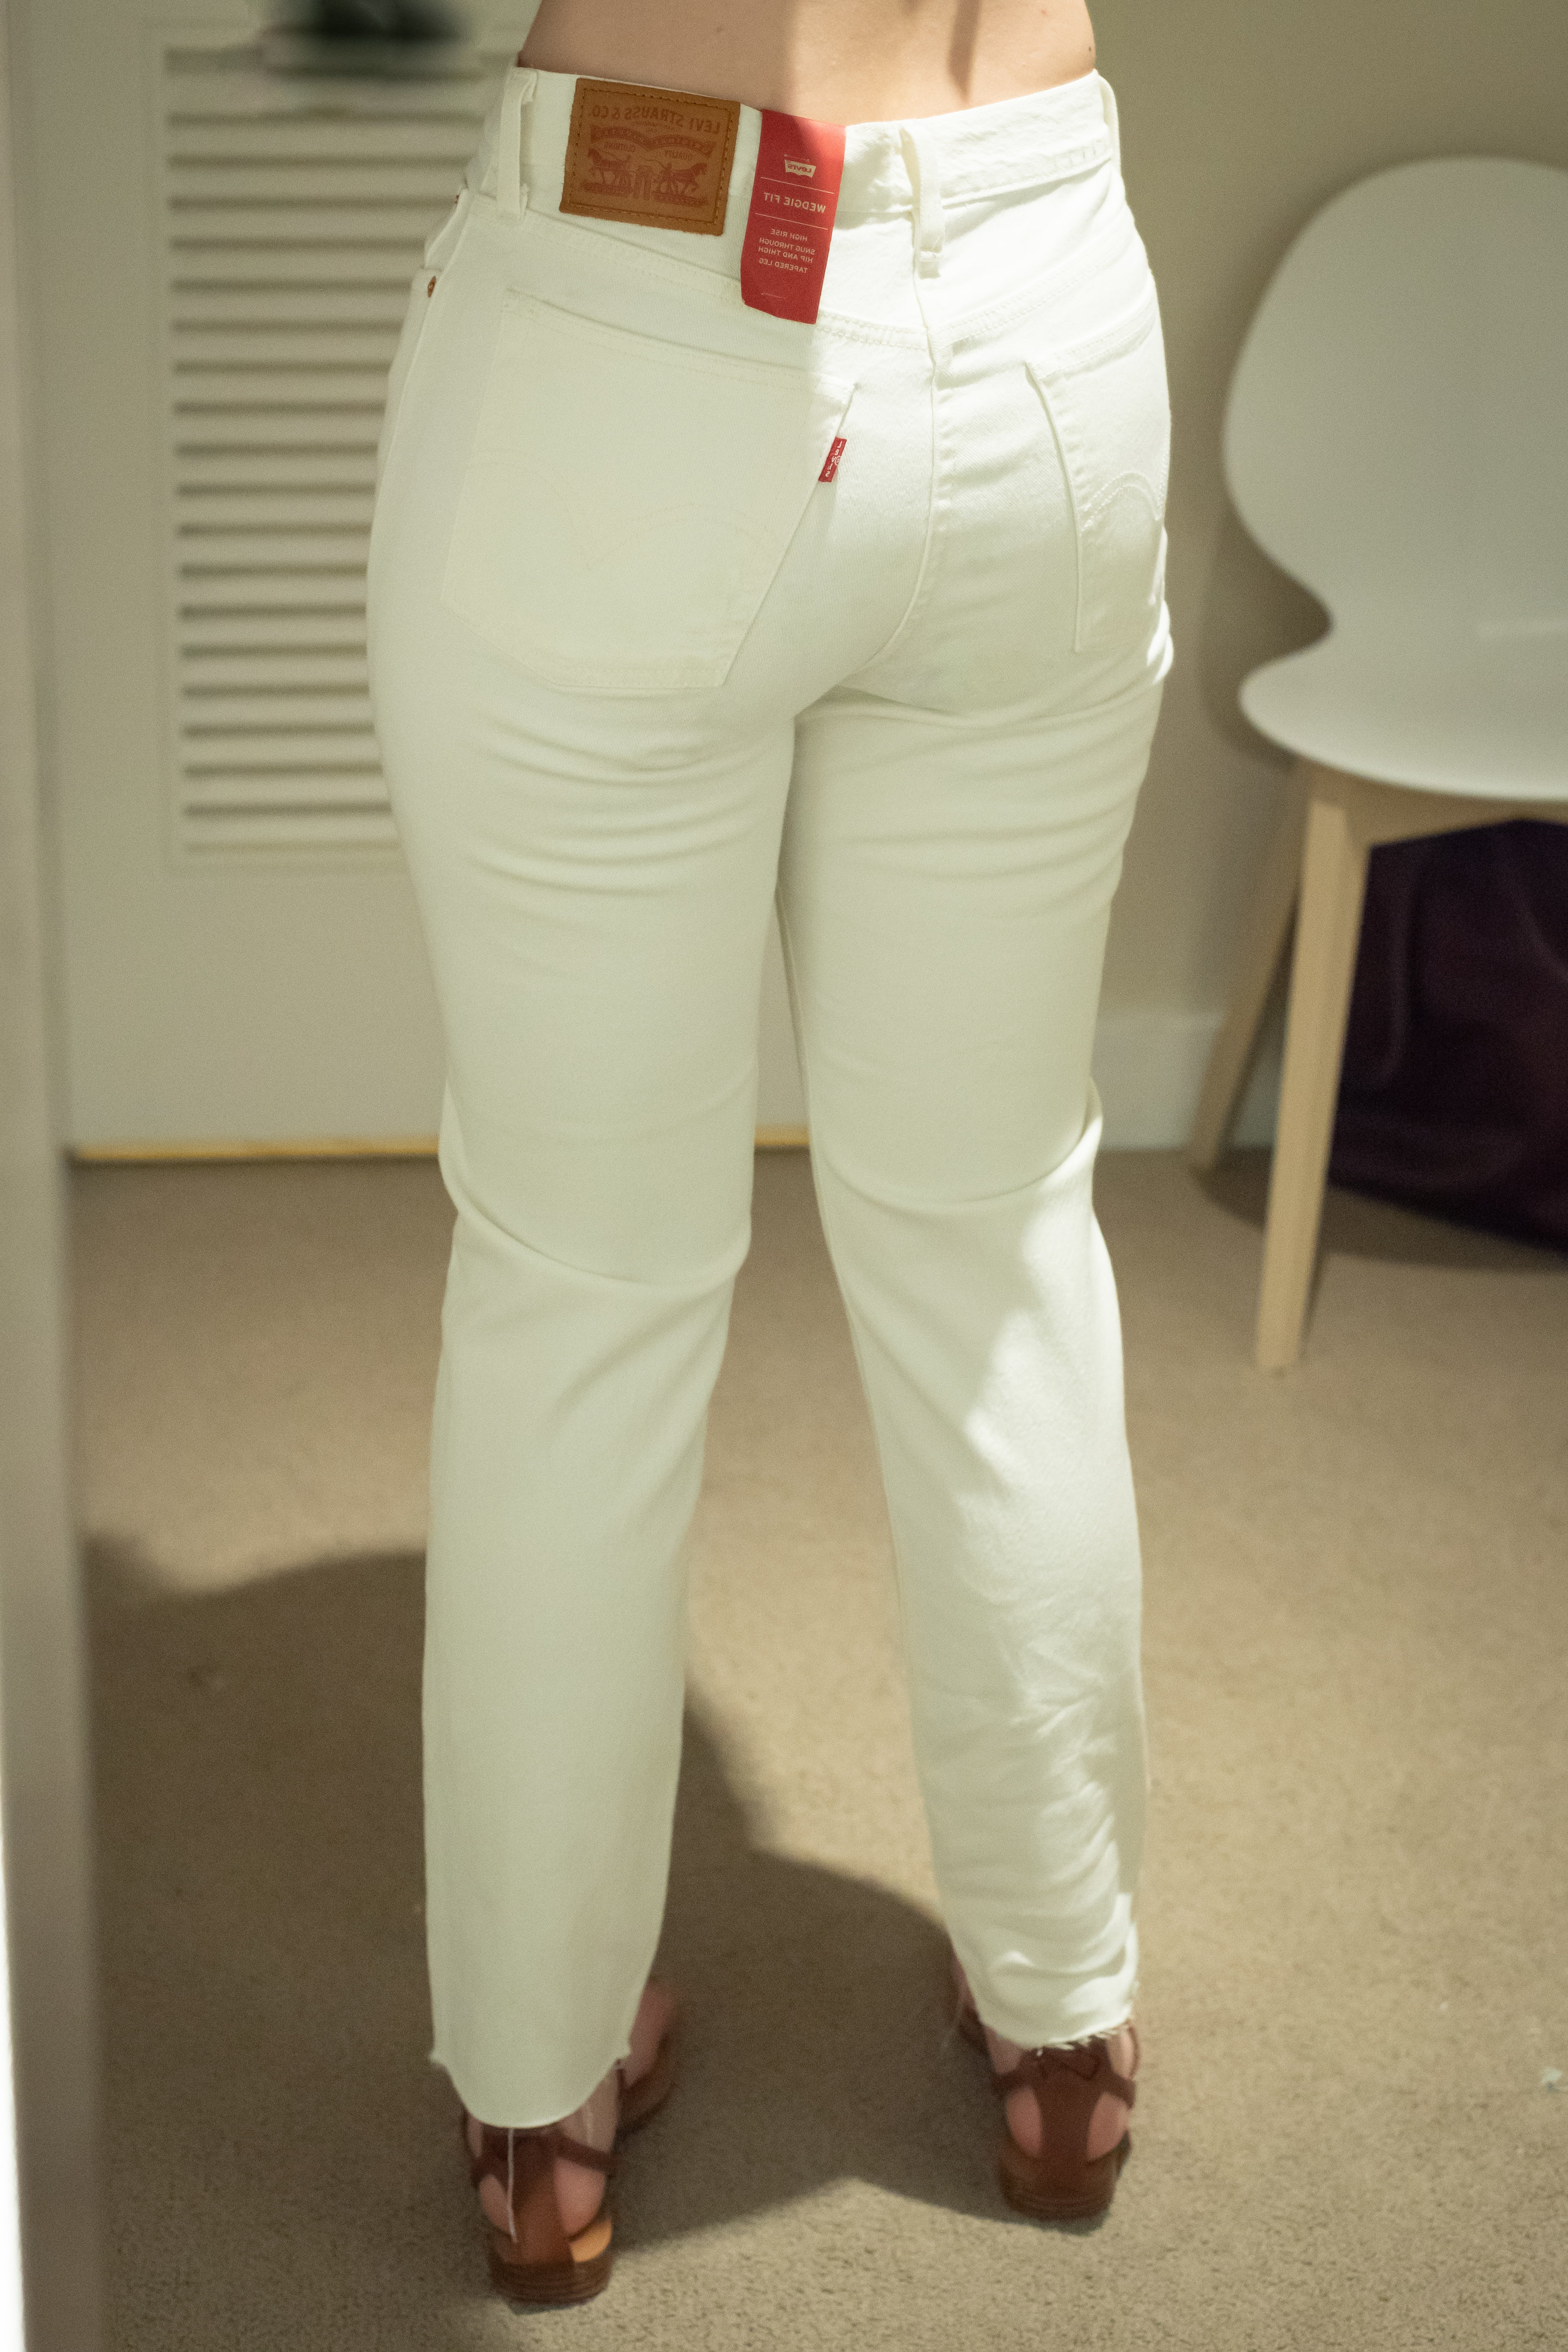 Levi's Wedgie Fit Jeans - Size 29 - Back View